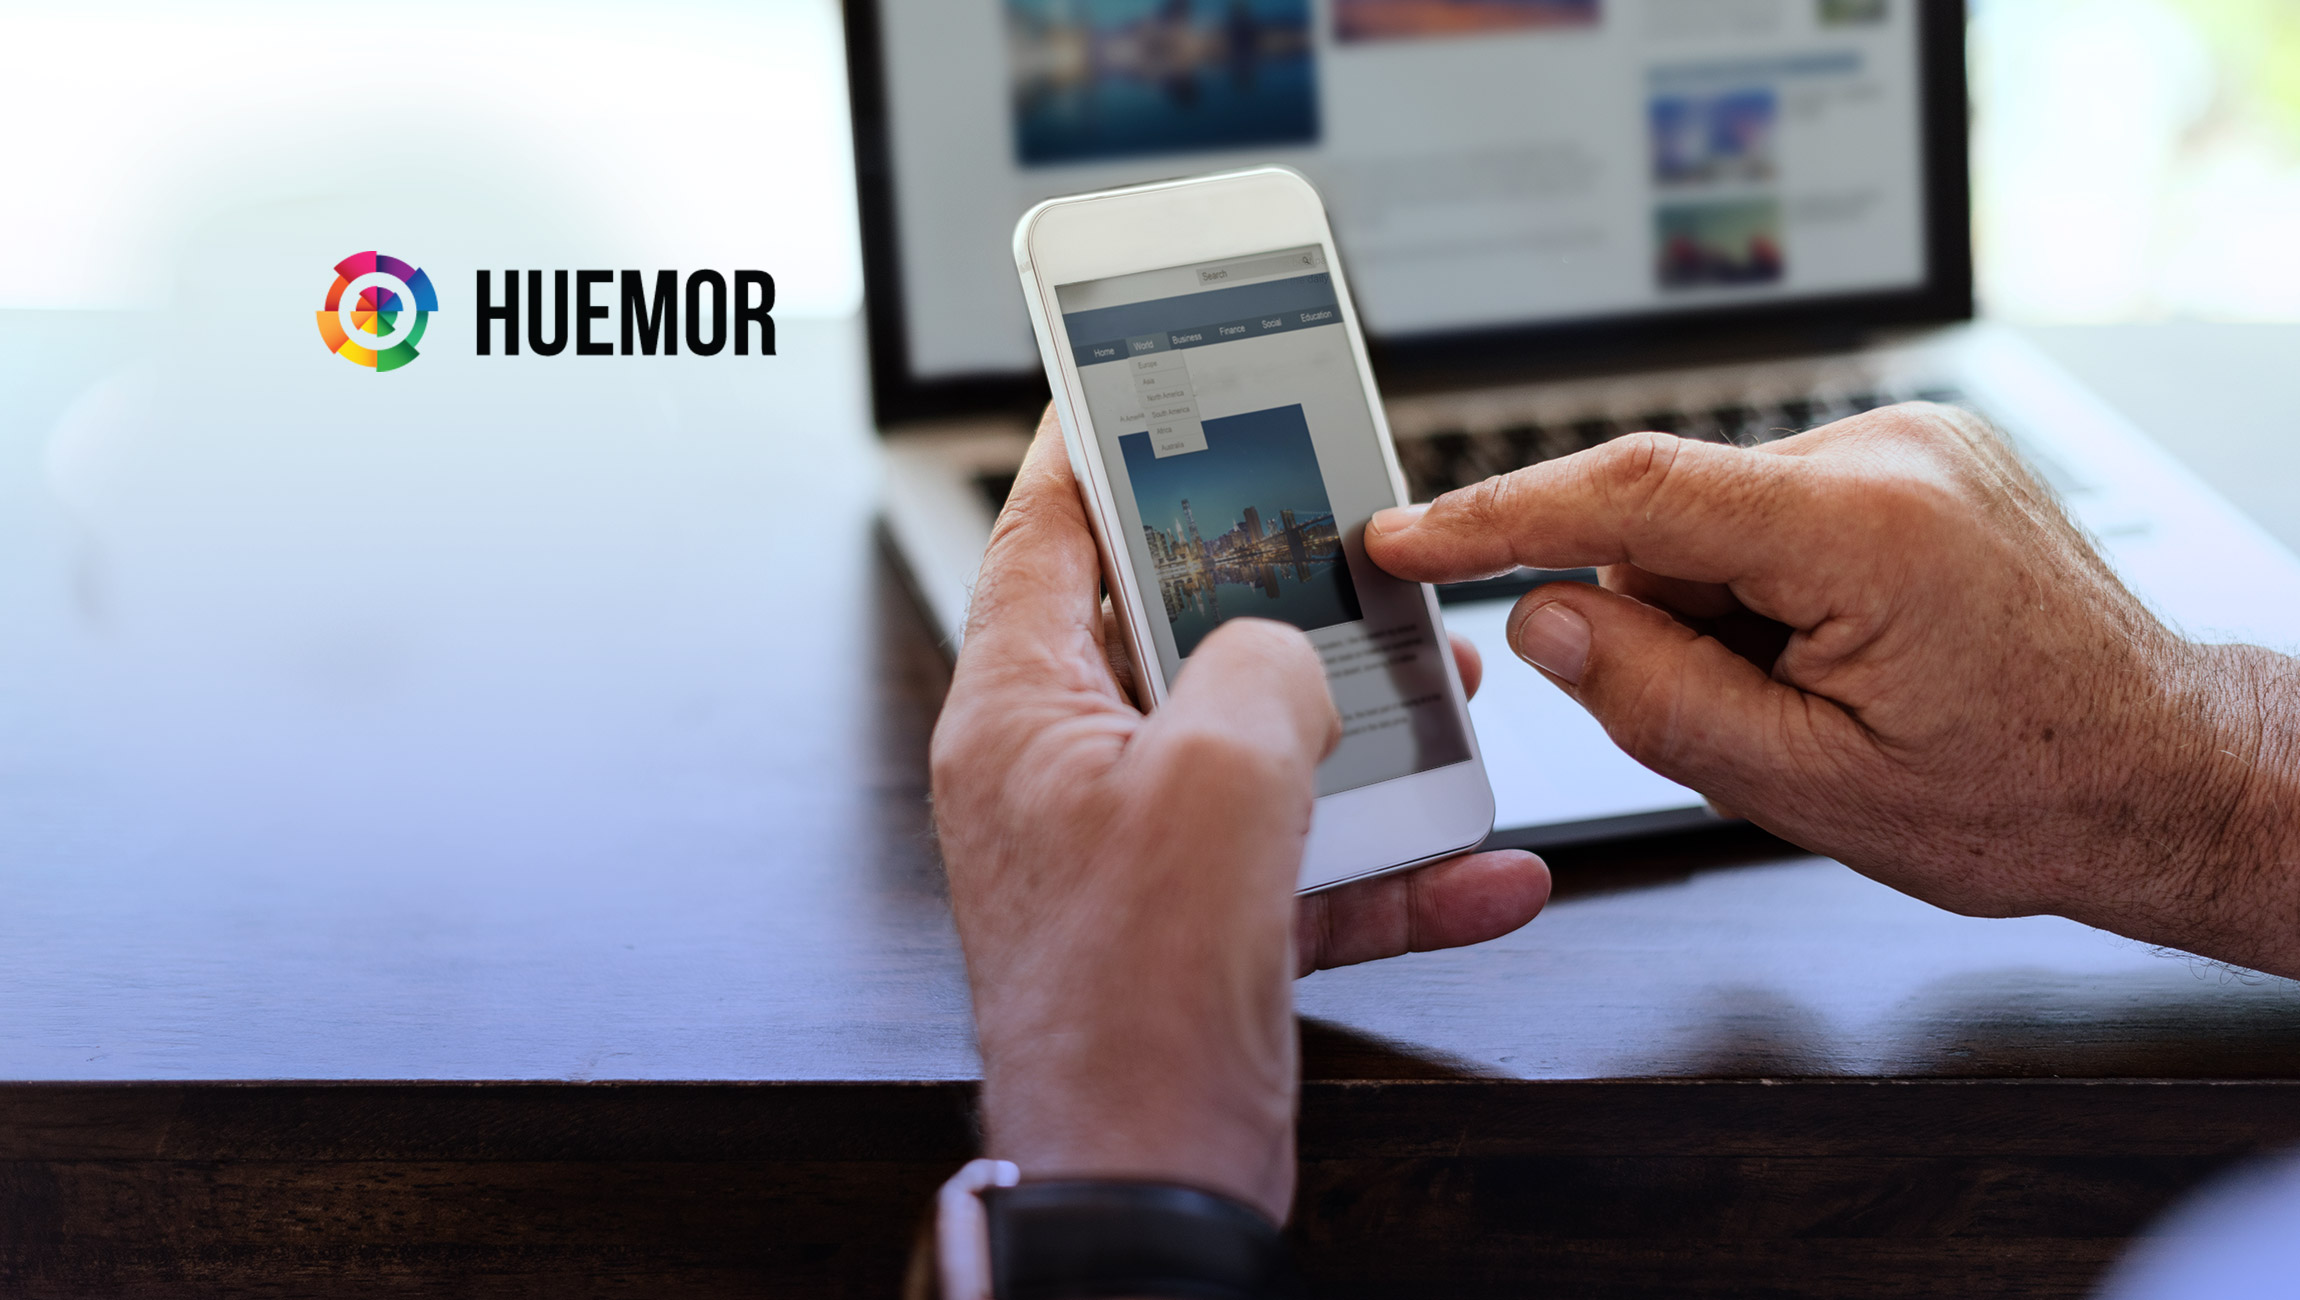 Website Redesign Agency, Huemor, Shares 4 Tips For A Successful Mobile Website